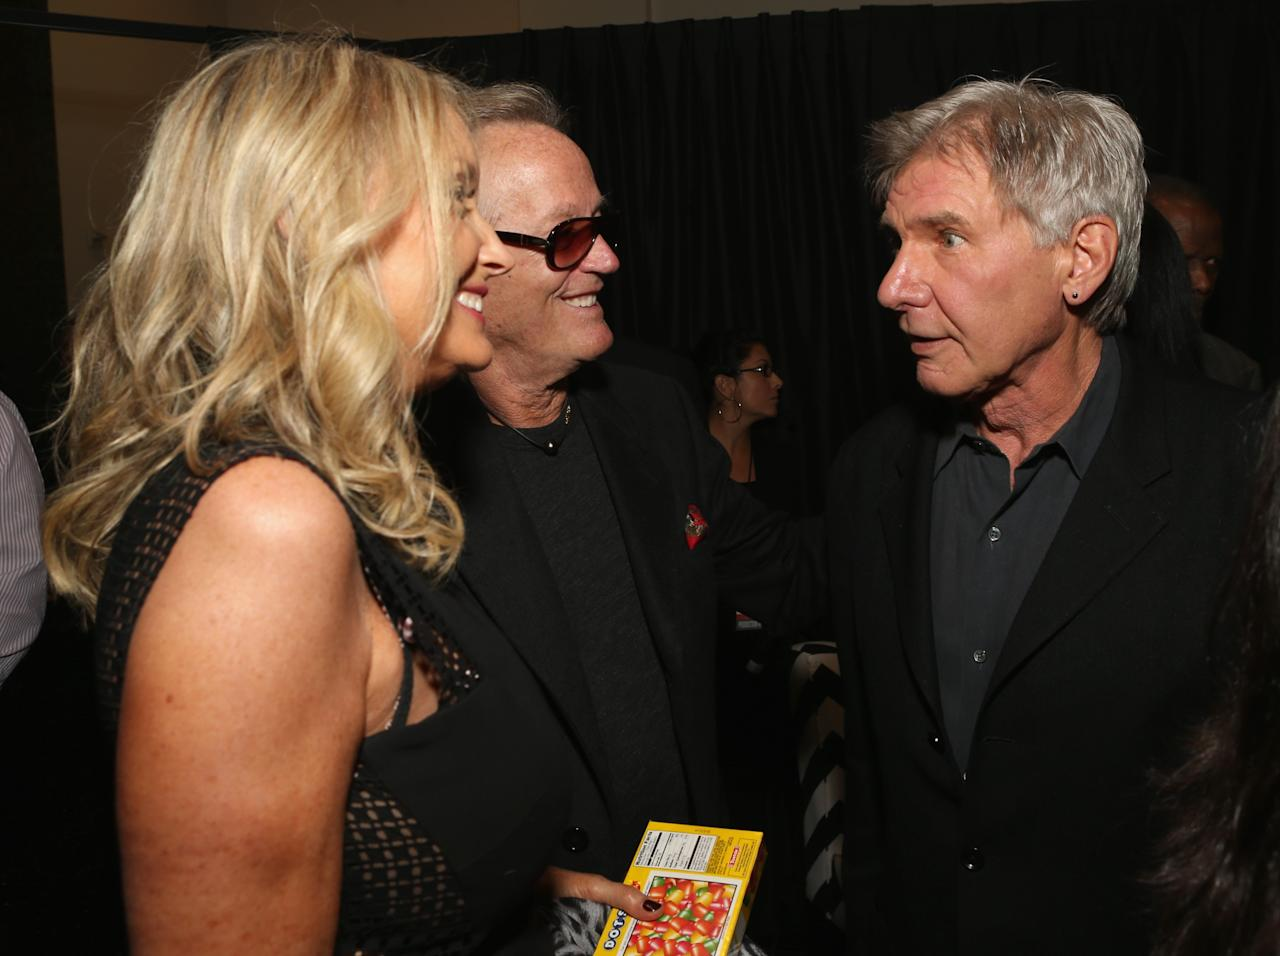 HOLLYWOOD, CA - APRIL 24:  (L-R) Parky Fonda and actors Peter Fonda and Harrison Ford attend Target Presents AFI's Night at the Movies at ArcLight Cinemas on April 24, 2013 in Hollywood, California.  (Photo by Jesse Grant/Getty Images for AFI)